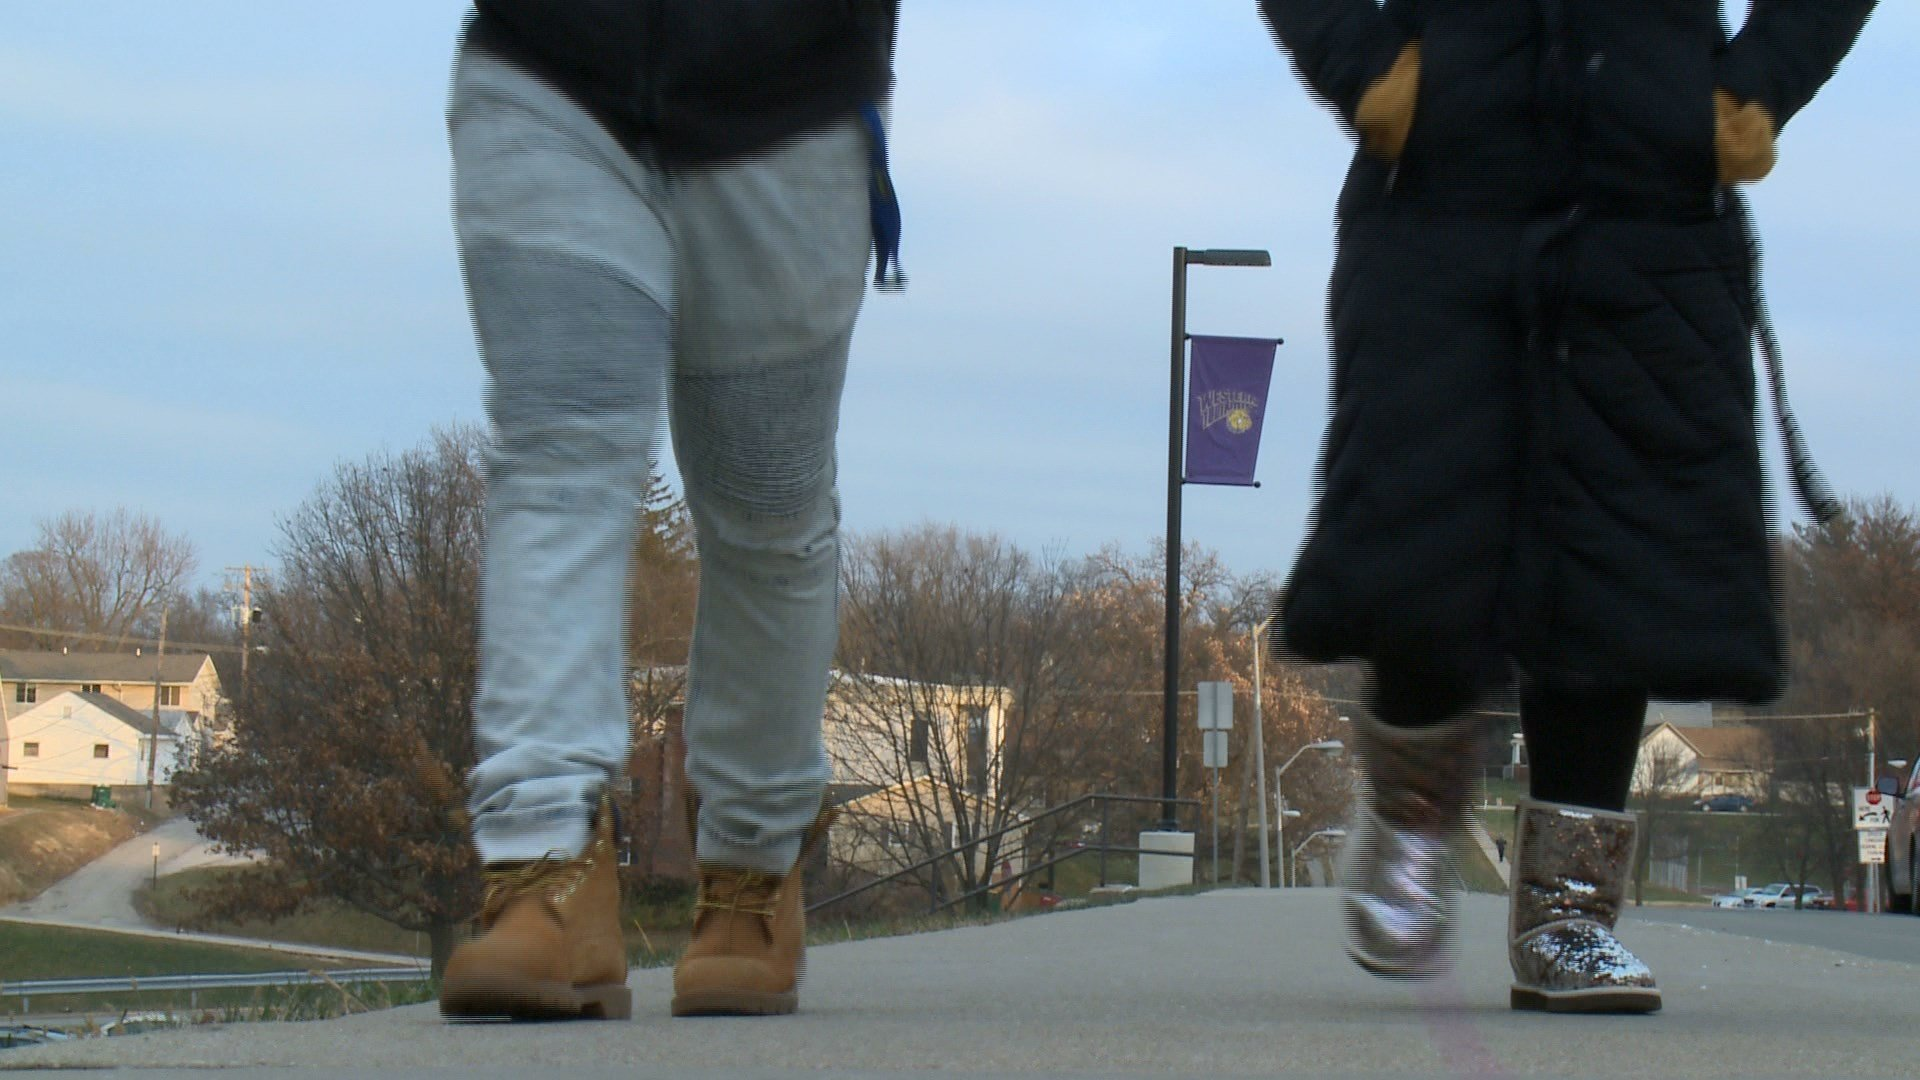 Students walking on the WIU campus in Macomb.